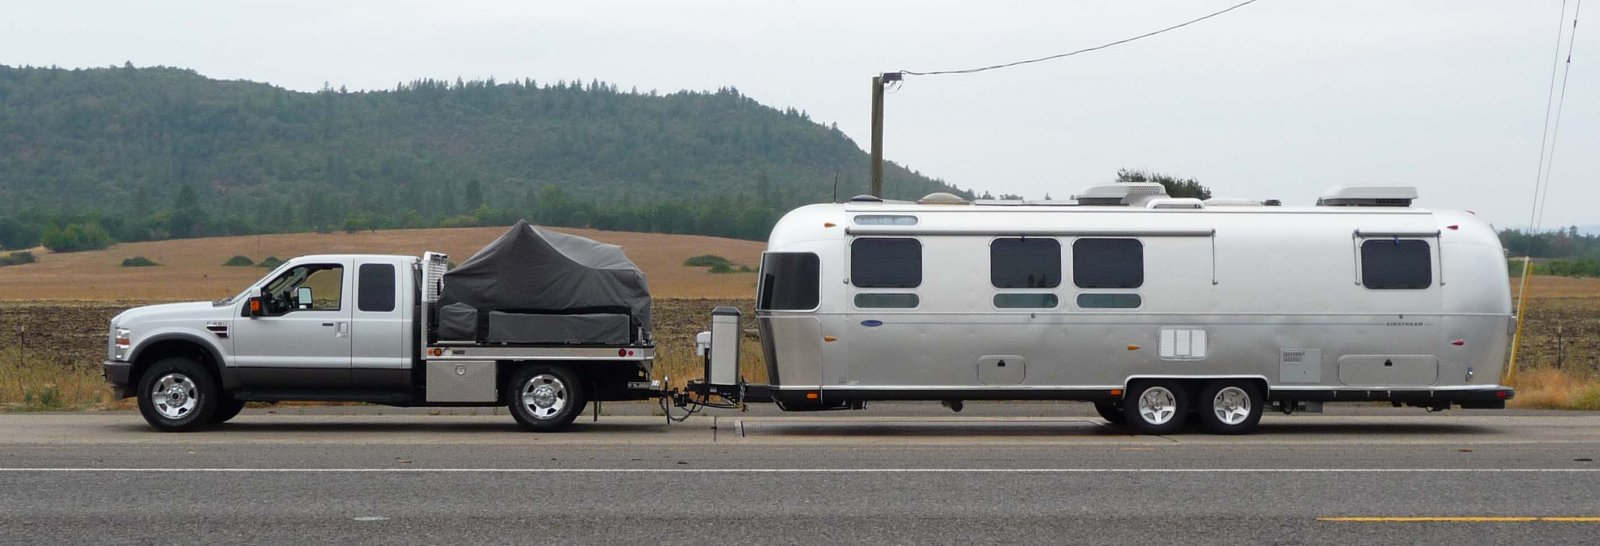 Click image for larger version  Name:Truck and Trailer 8-19-08.jpg Views:123 Size:132.9 KB ID:65960